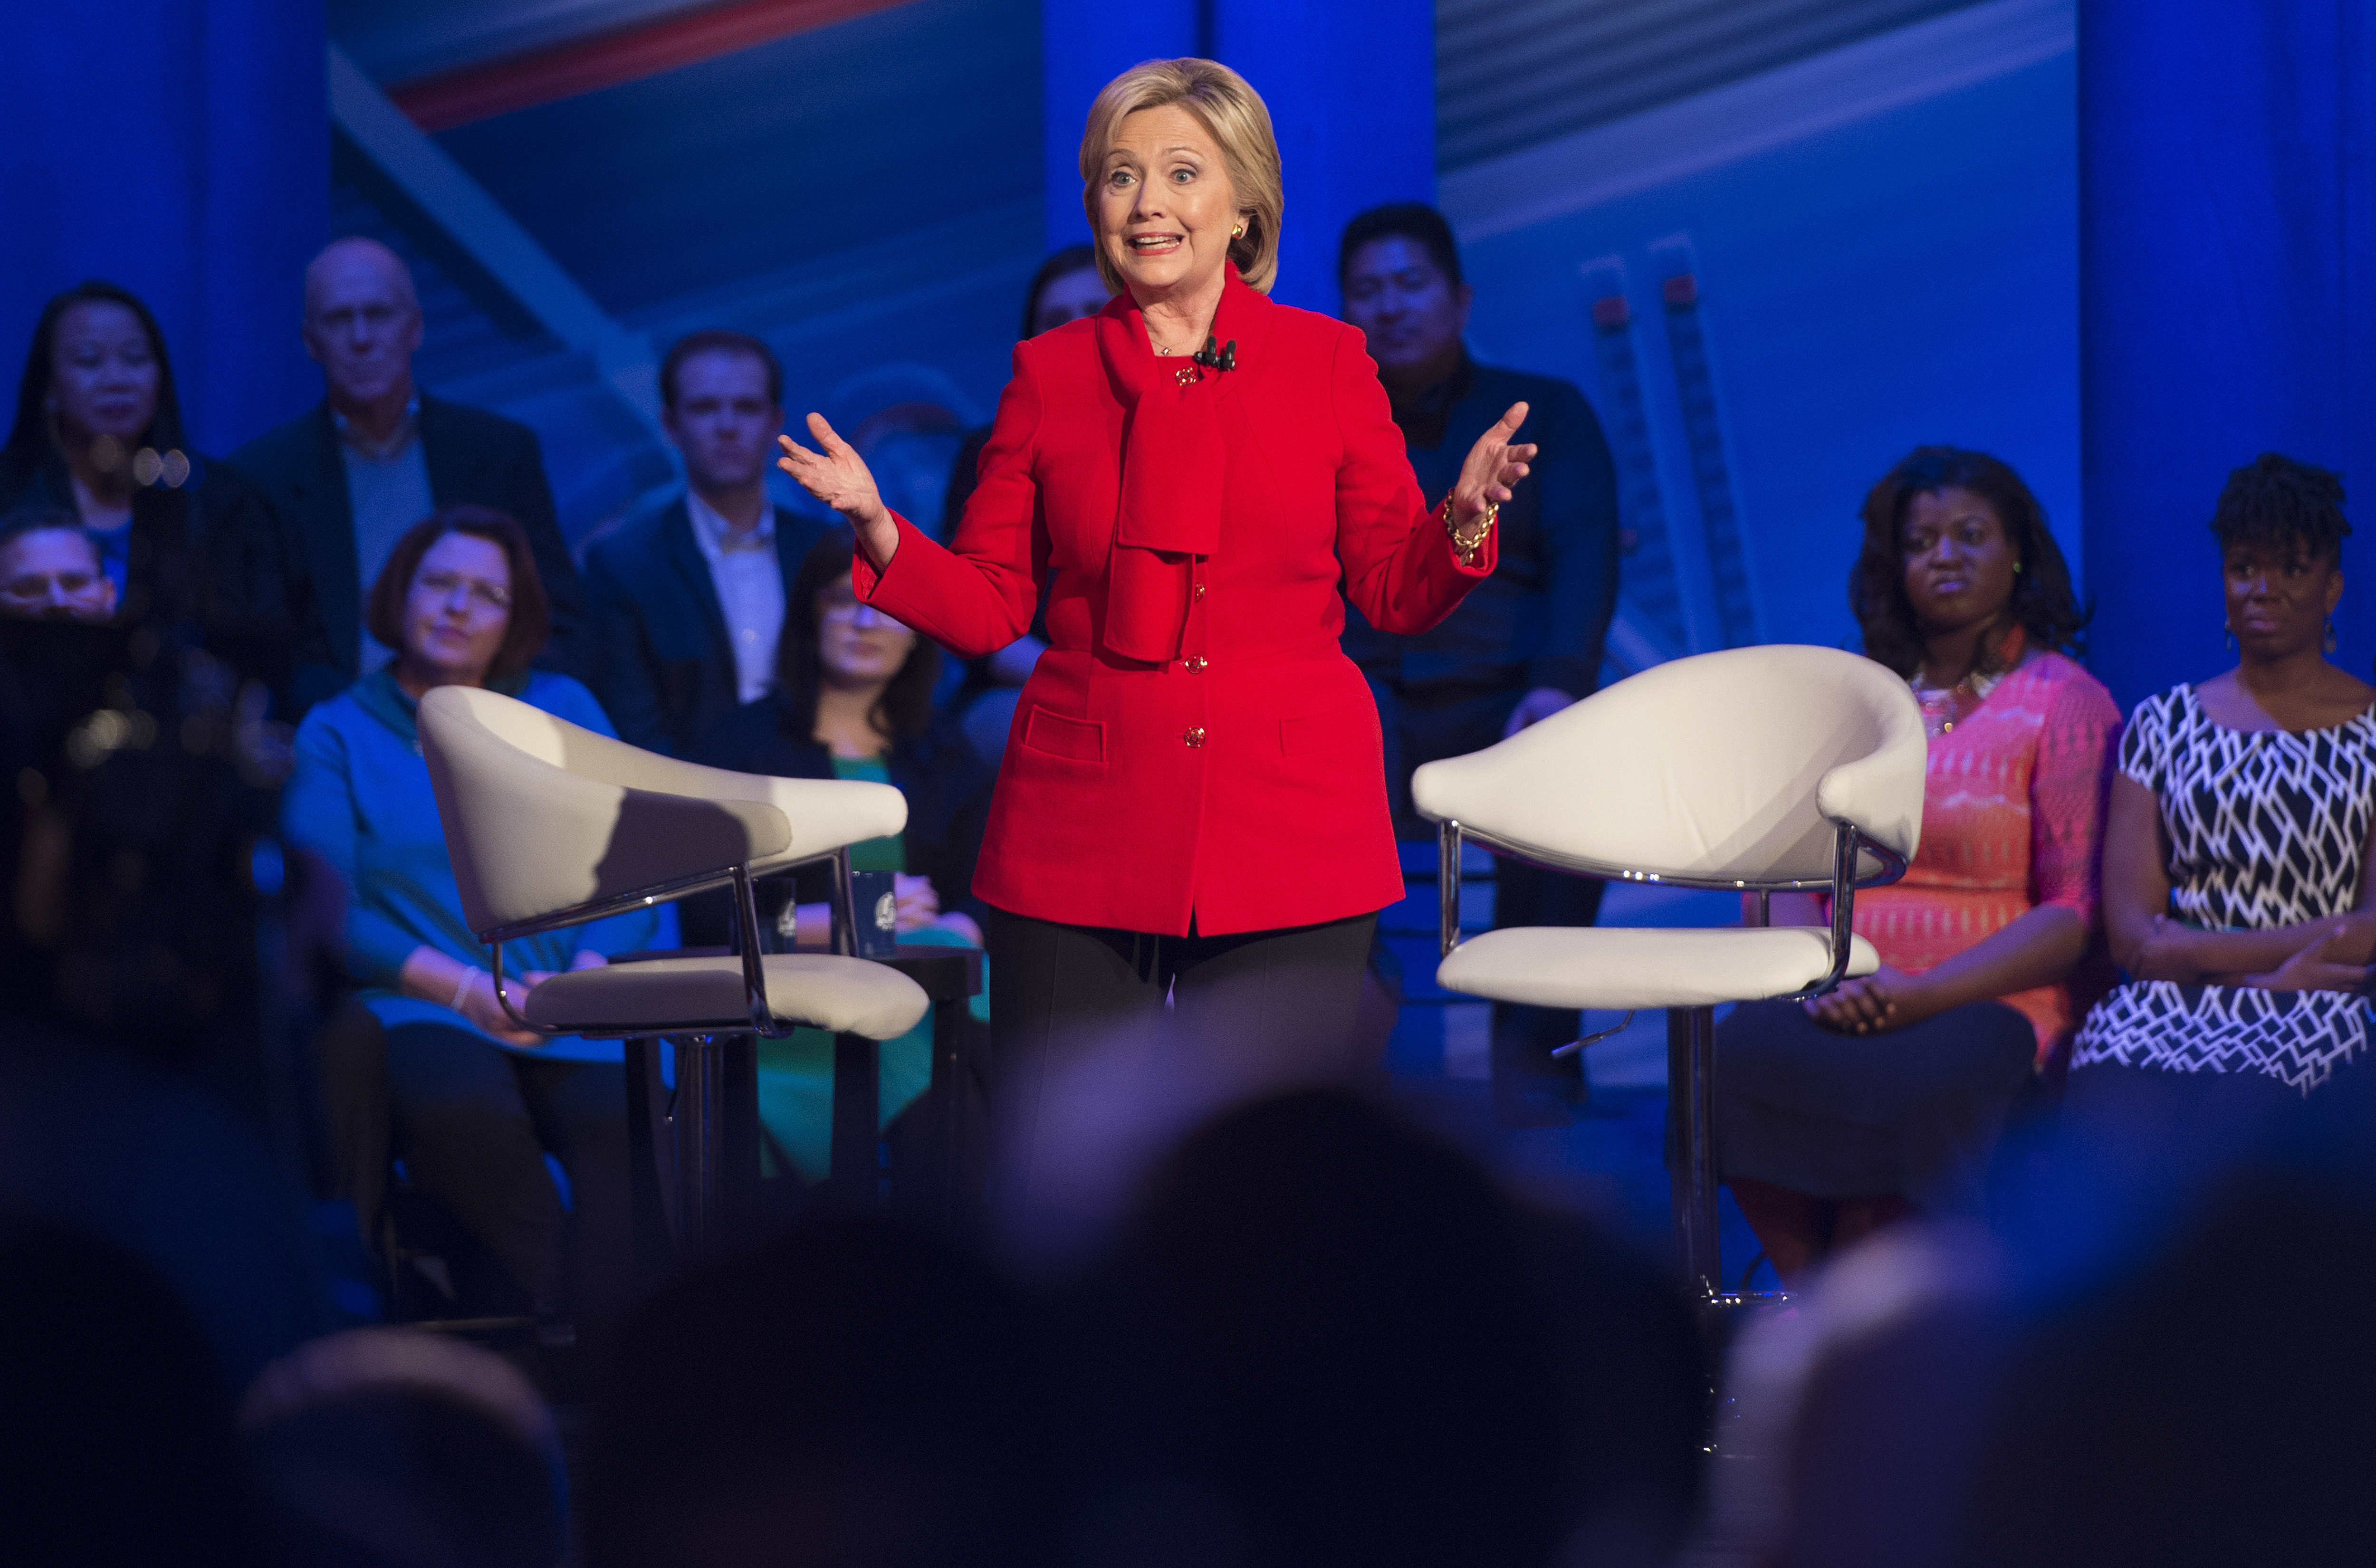 Democratic presidential candidate Hillary Clinton speaks during the CNN Town Hall at Drake University in Des Moines , Iowa, January 25, 2016, ahead of the Iowa Caucus. AFP PHOTO / JIM WATSON / AFP / JIM WATSON (Photo credit should read JIM WATSON/AFP/Getty Images)